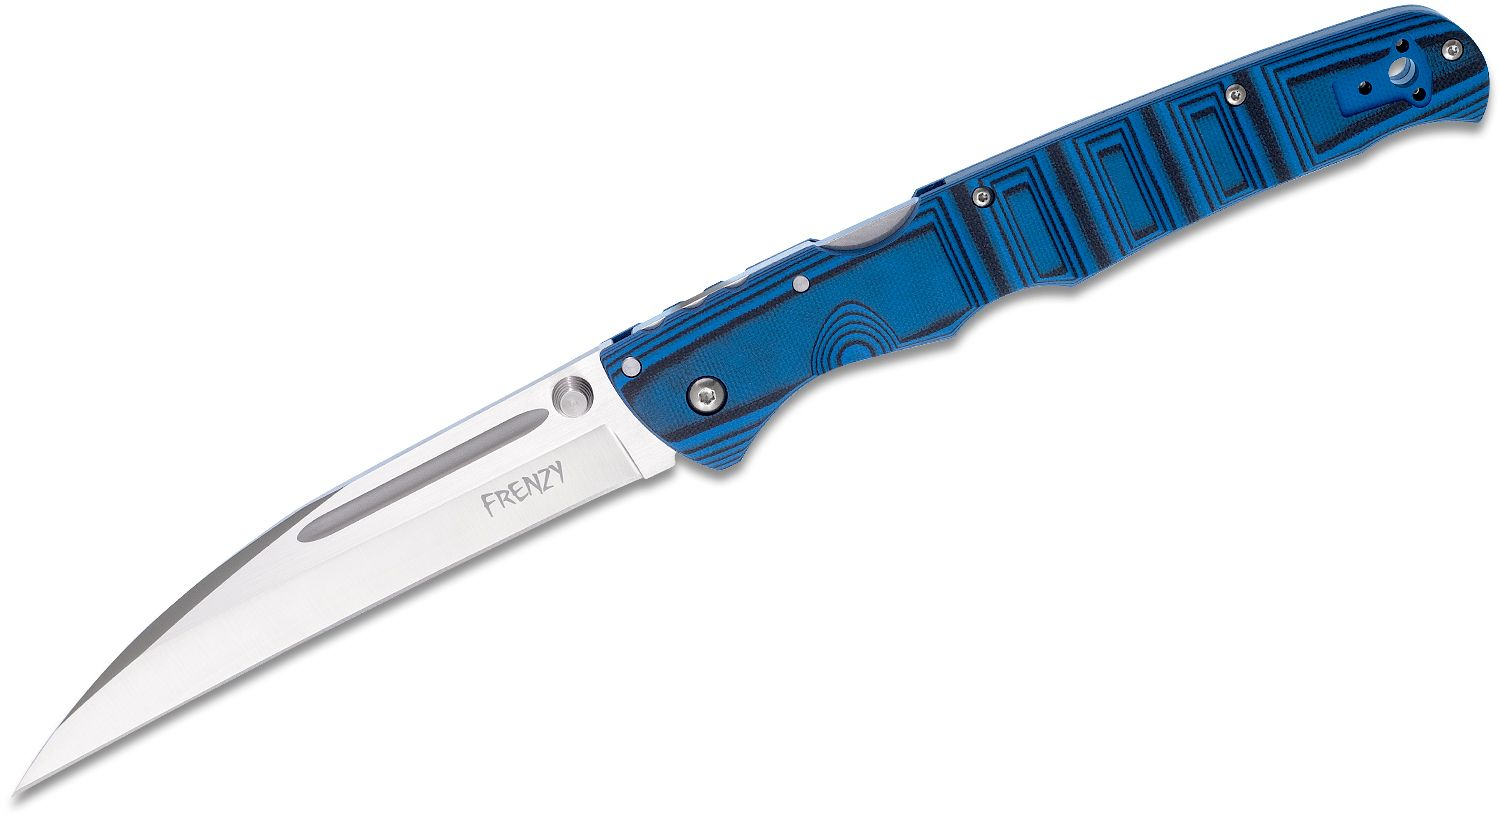 Cold Steel 62P2A Frenzy II Folding Knife 5.5 inch S35VN Satin Plain Blade, Blue/Black G10 Handles